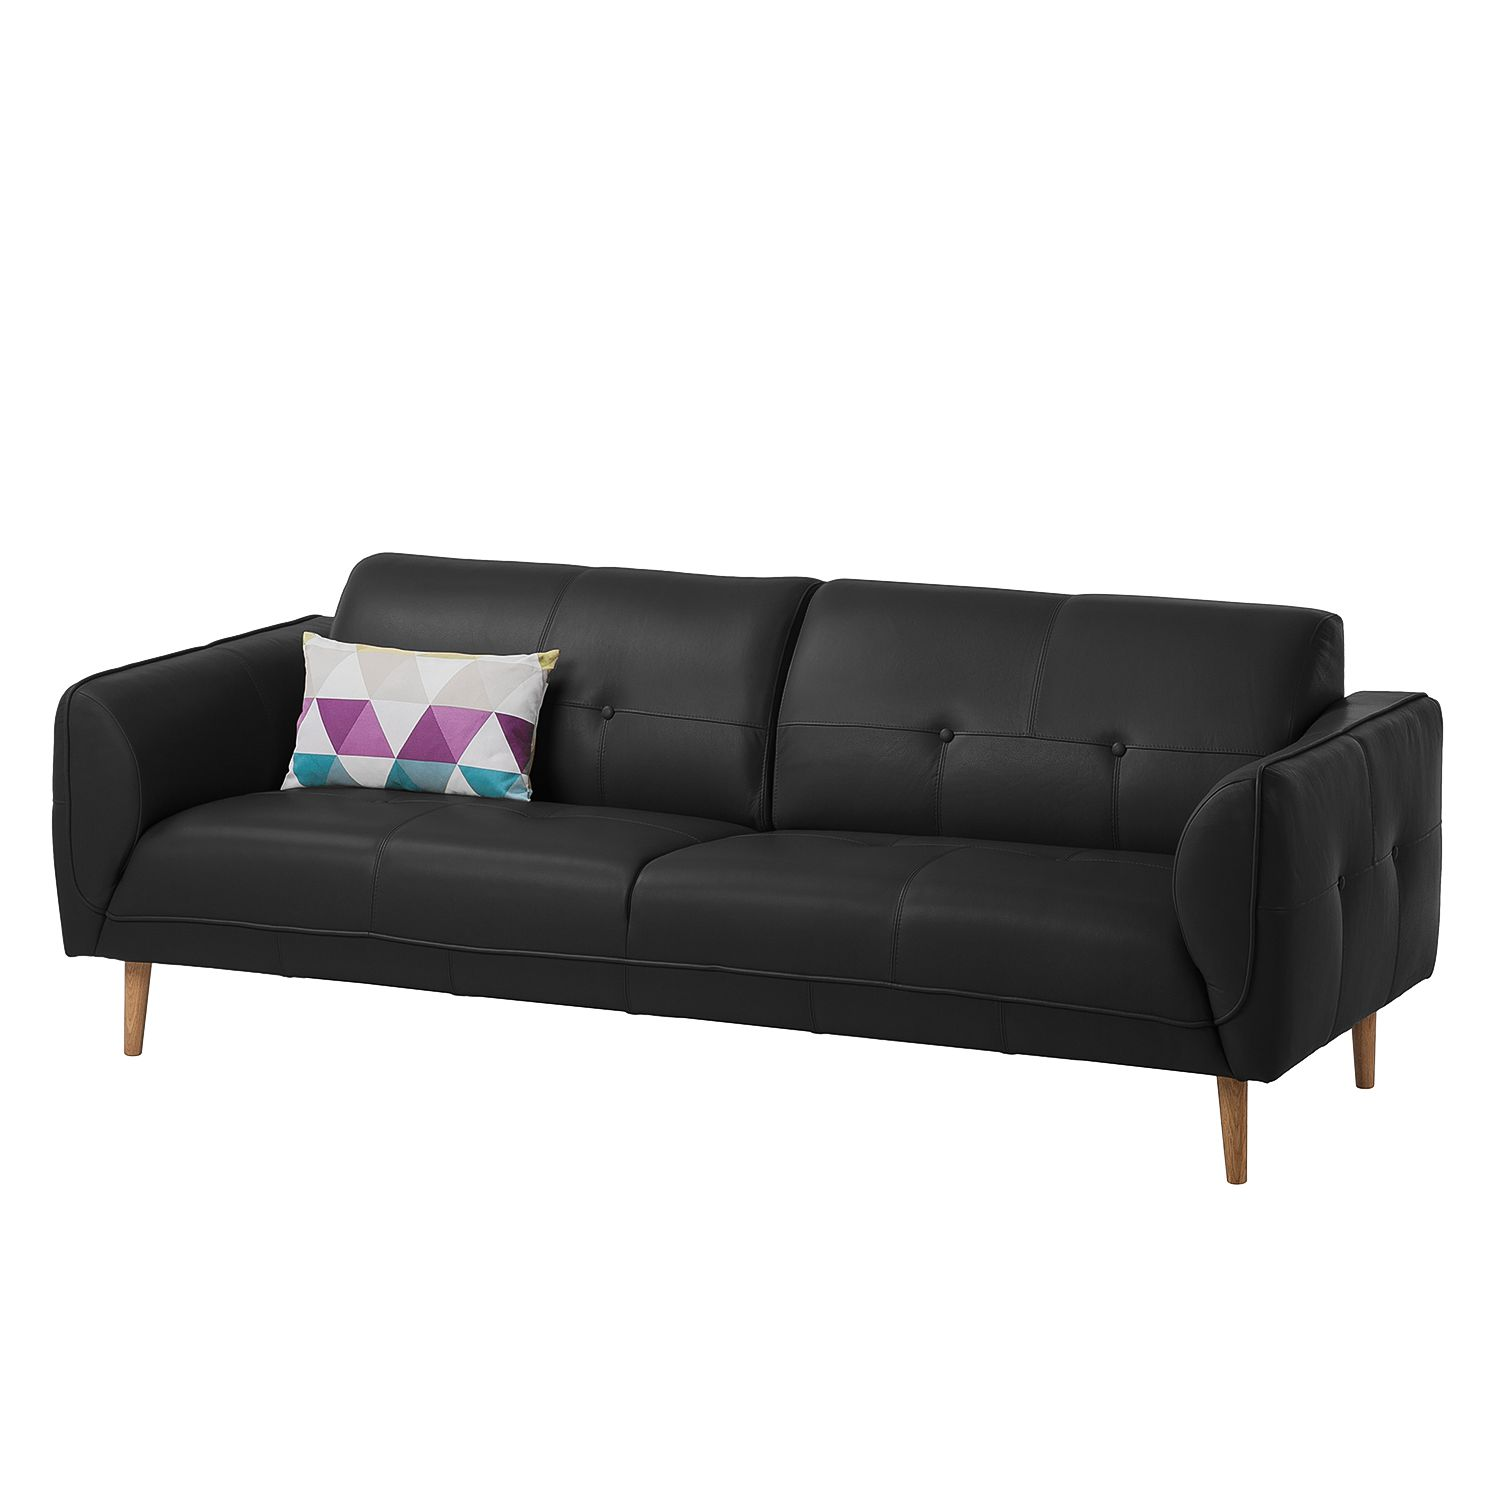 sofa cala 3 sitzer echtleder eiche natur echtleder neka schwarz studio copenhagen online. Black Bedroom Furniture Sets. Home Design Ideas